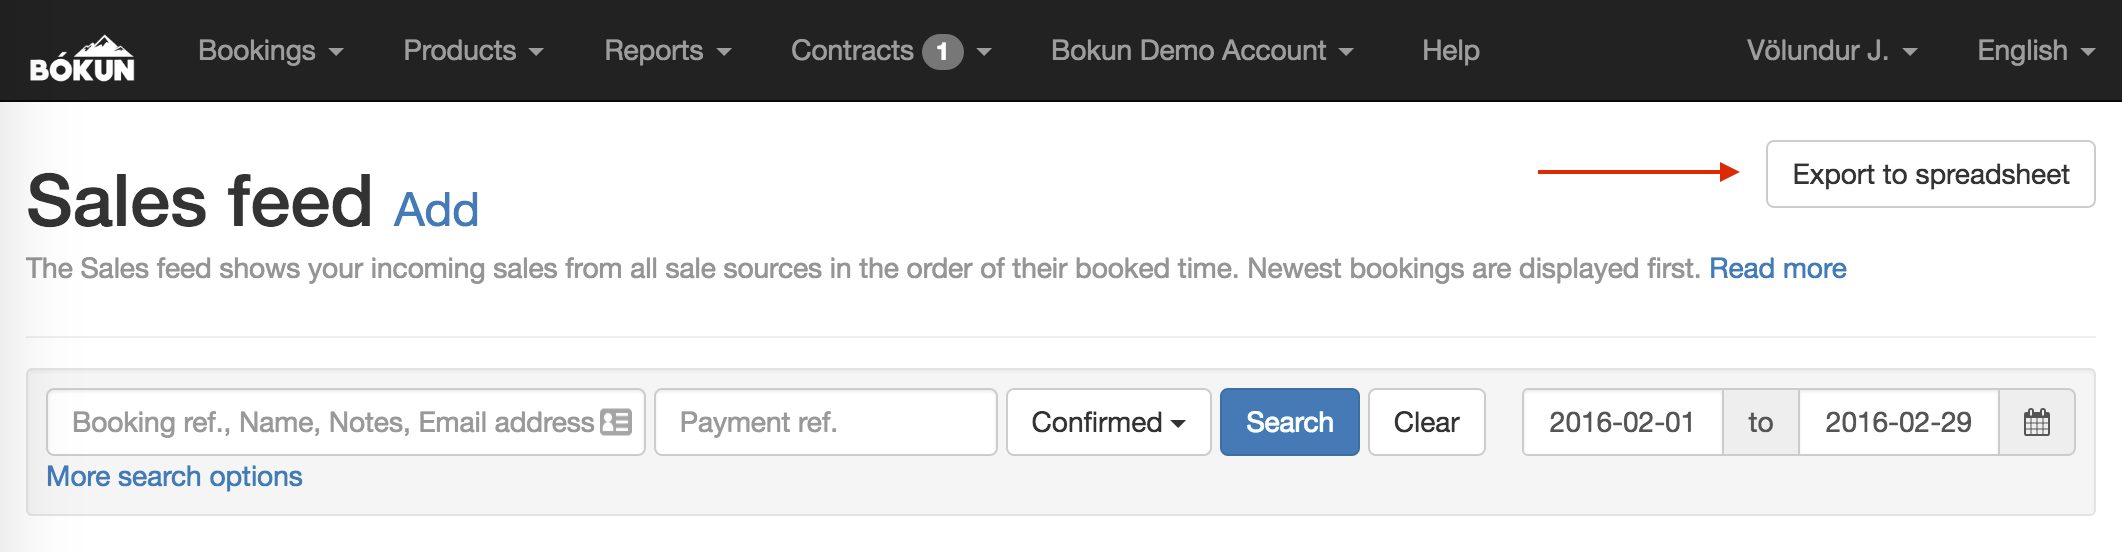 how to export the sales feed to a spreadsheet bókun help center